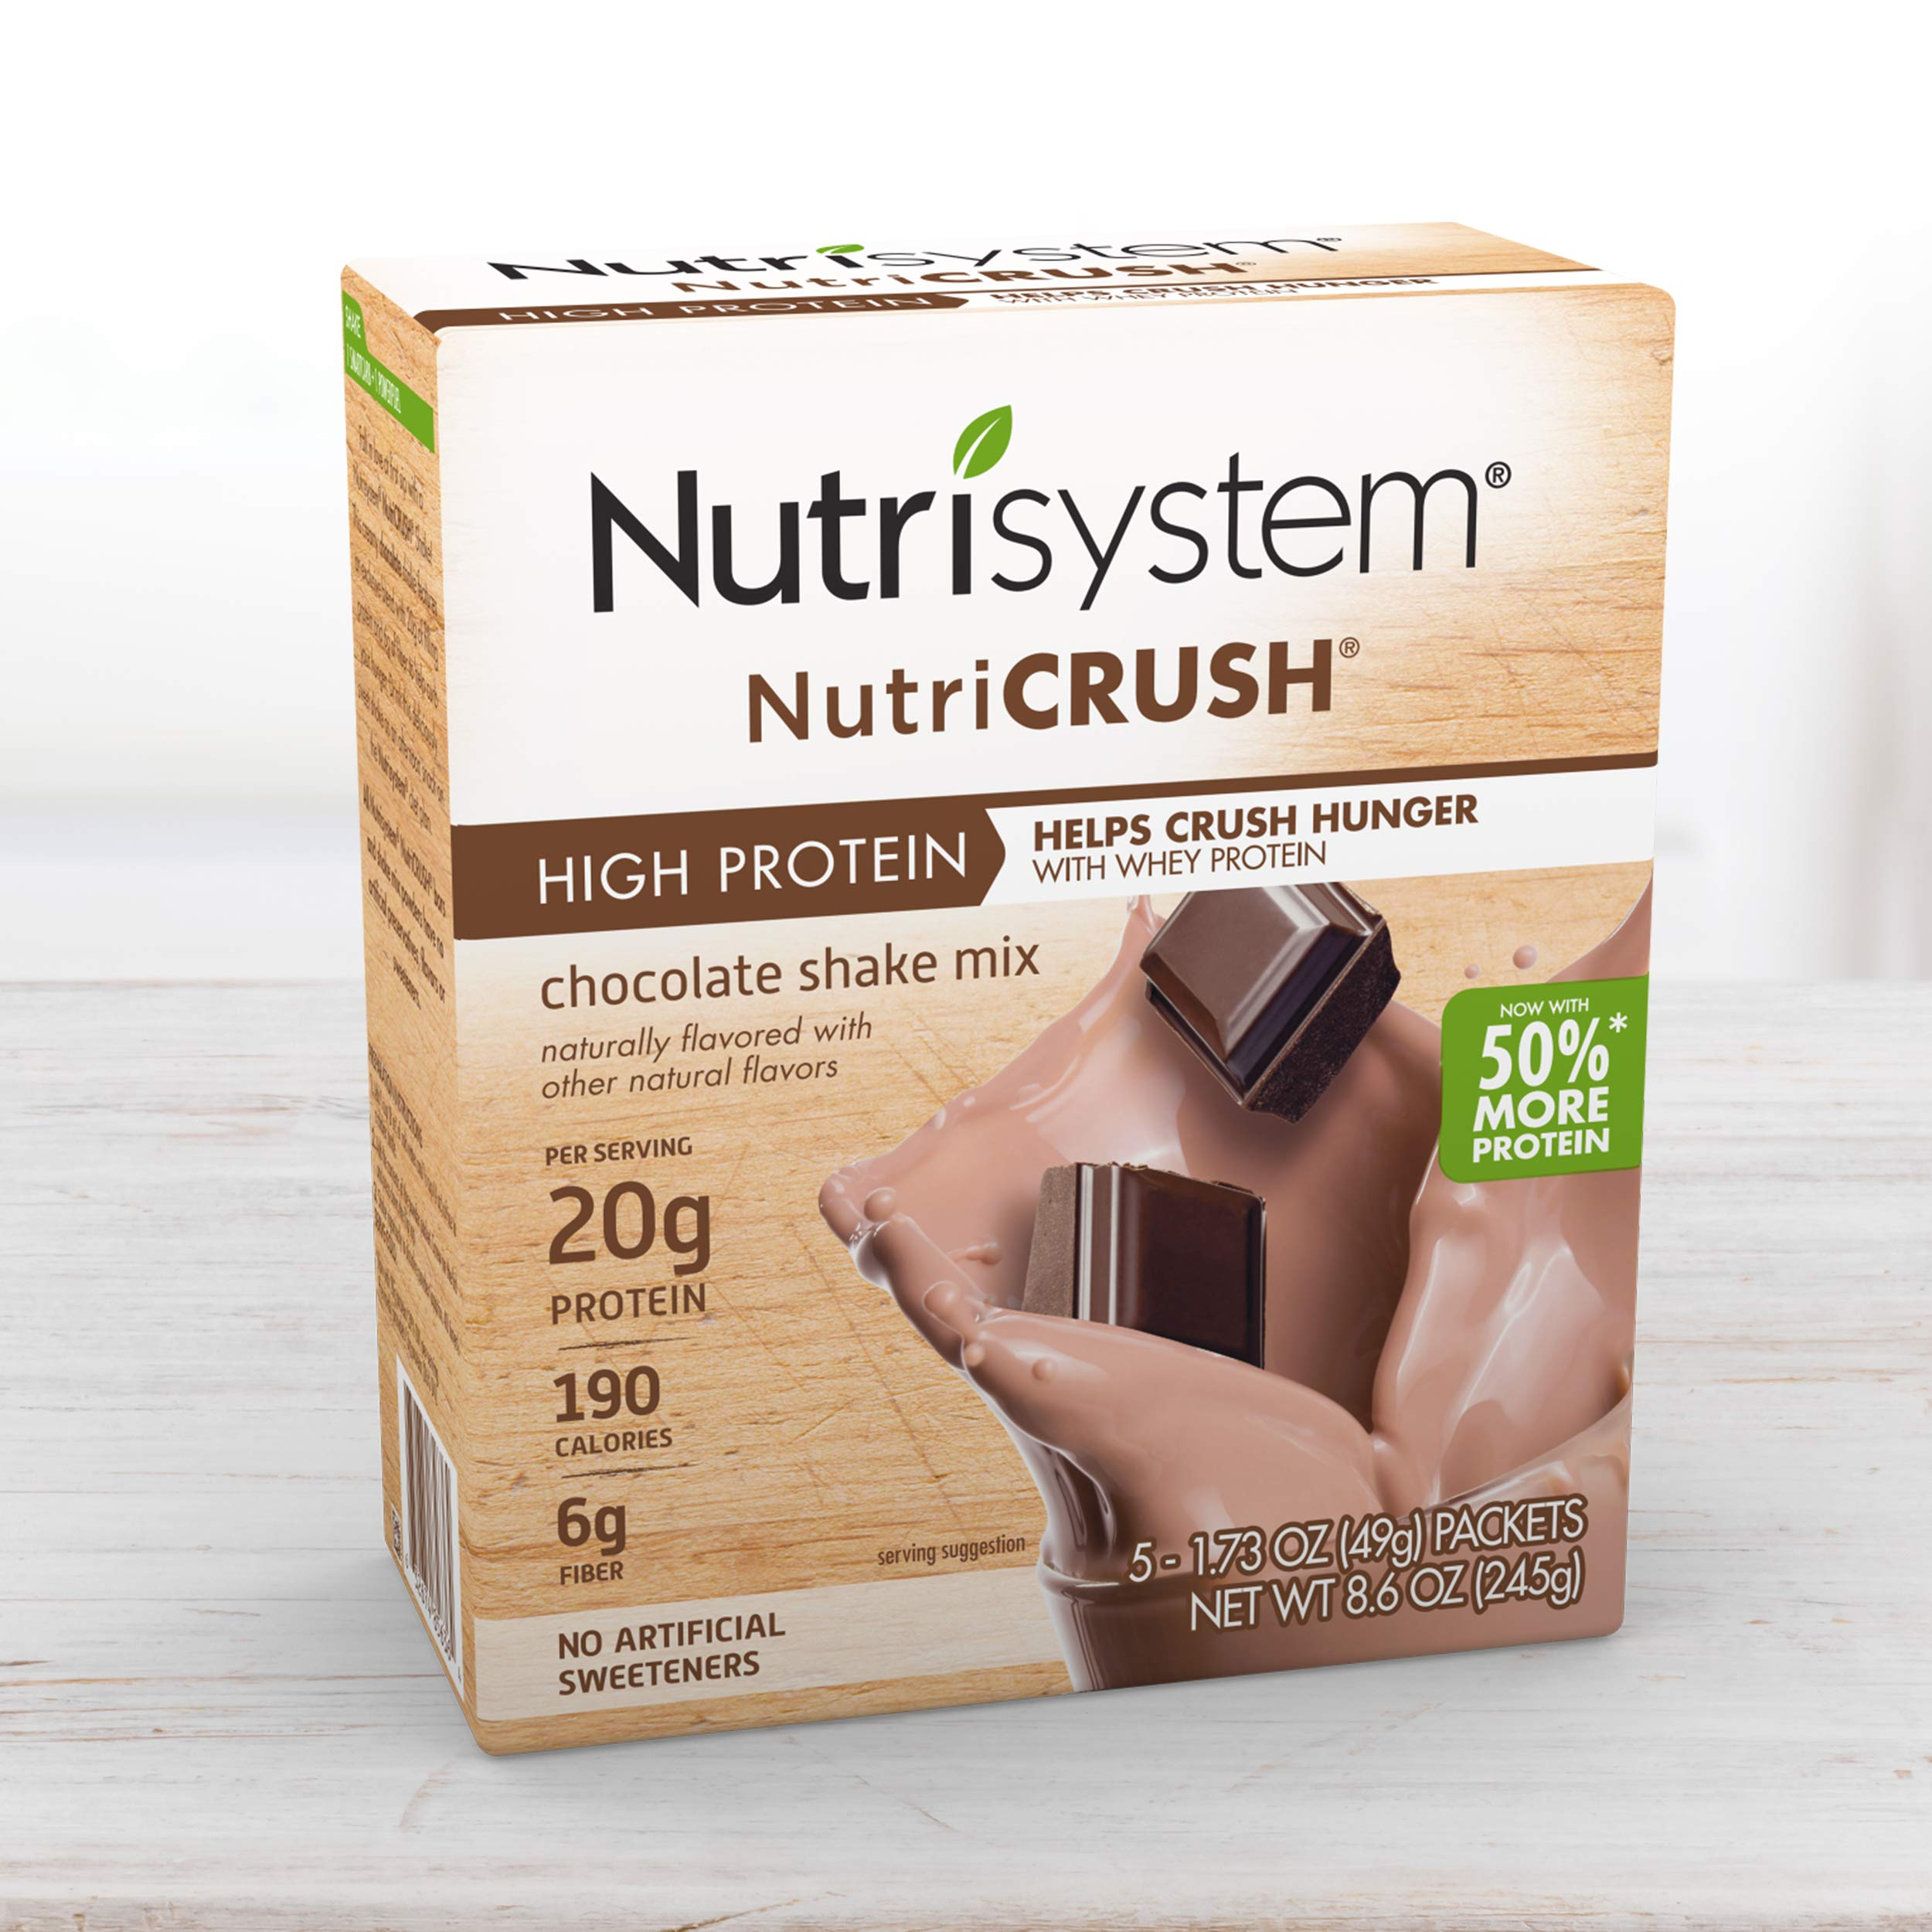 Nutrisystem® NutriCRUSH® Chocolate Shake Mix, 20 Count, Now with 50% More Protein by Nutrisystem (Image #1)